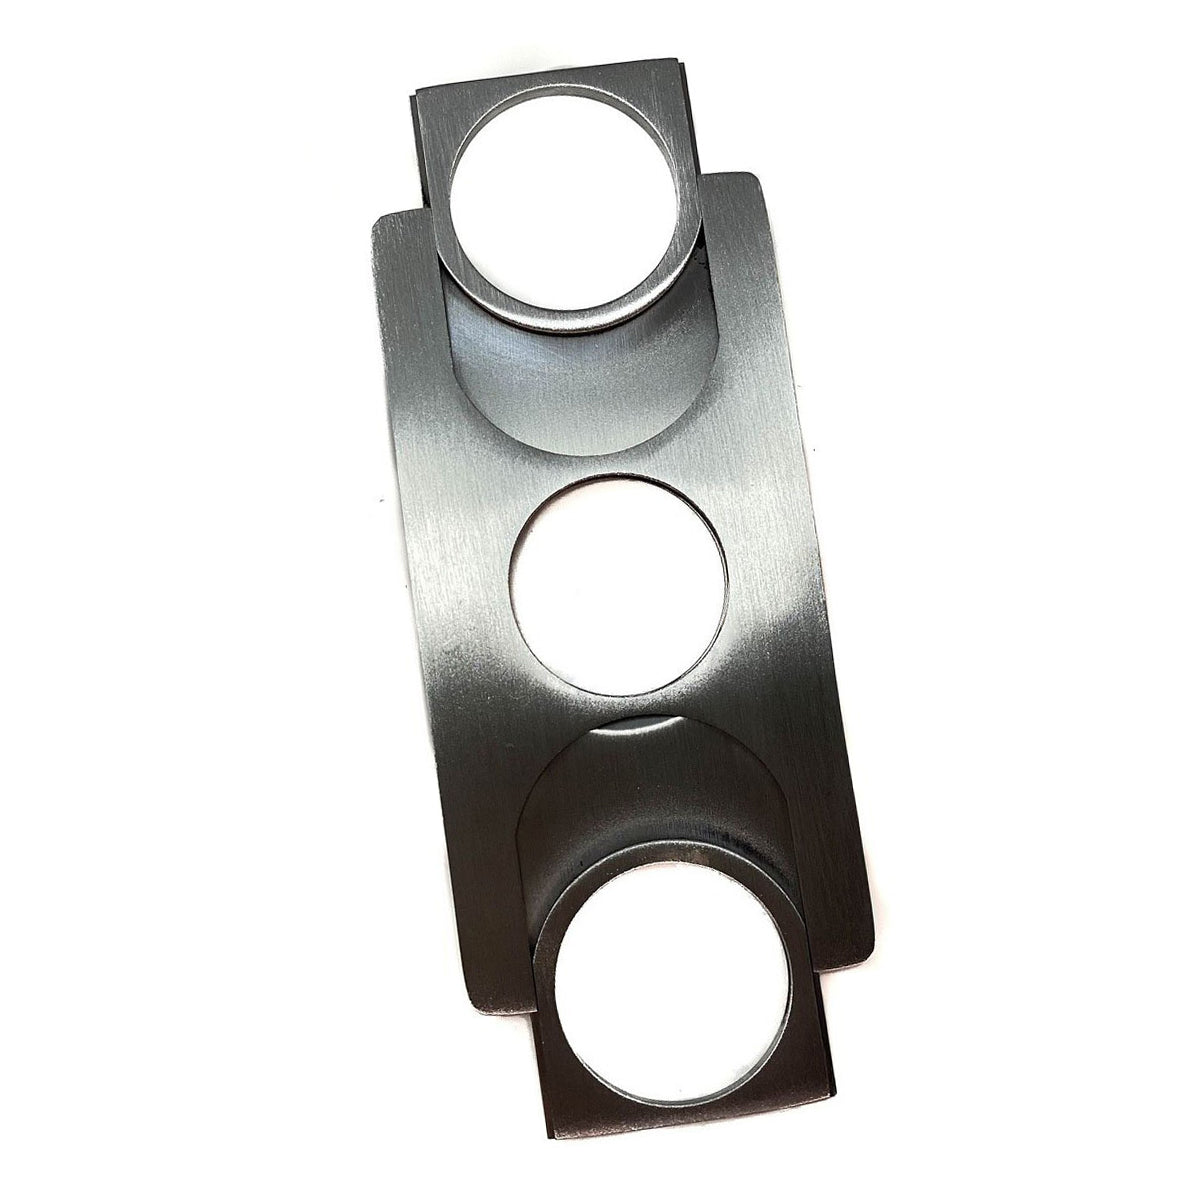 Cigar Cutter FLAT Stainless Steel Credit Card Size Double Blade